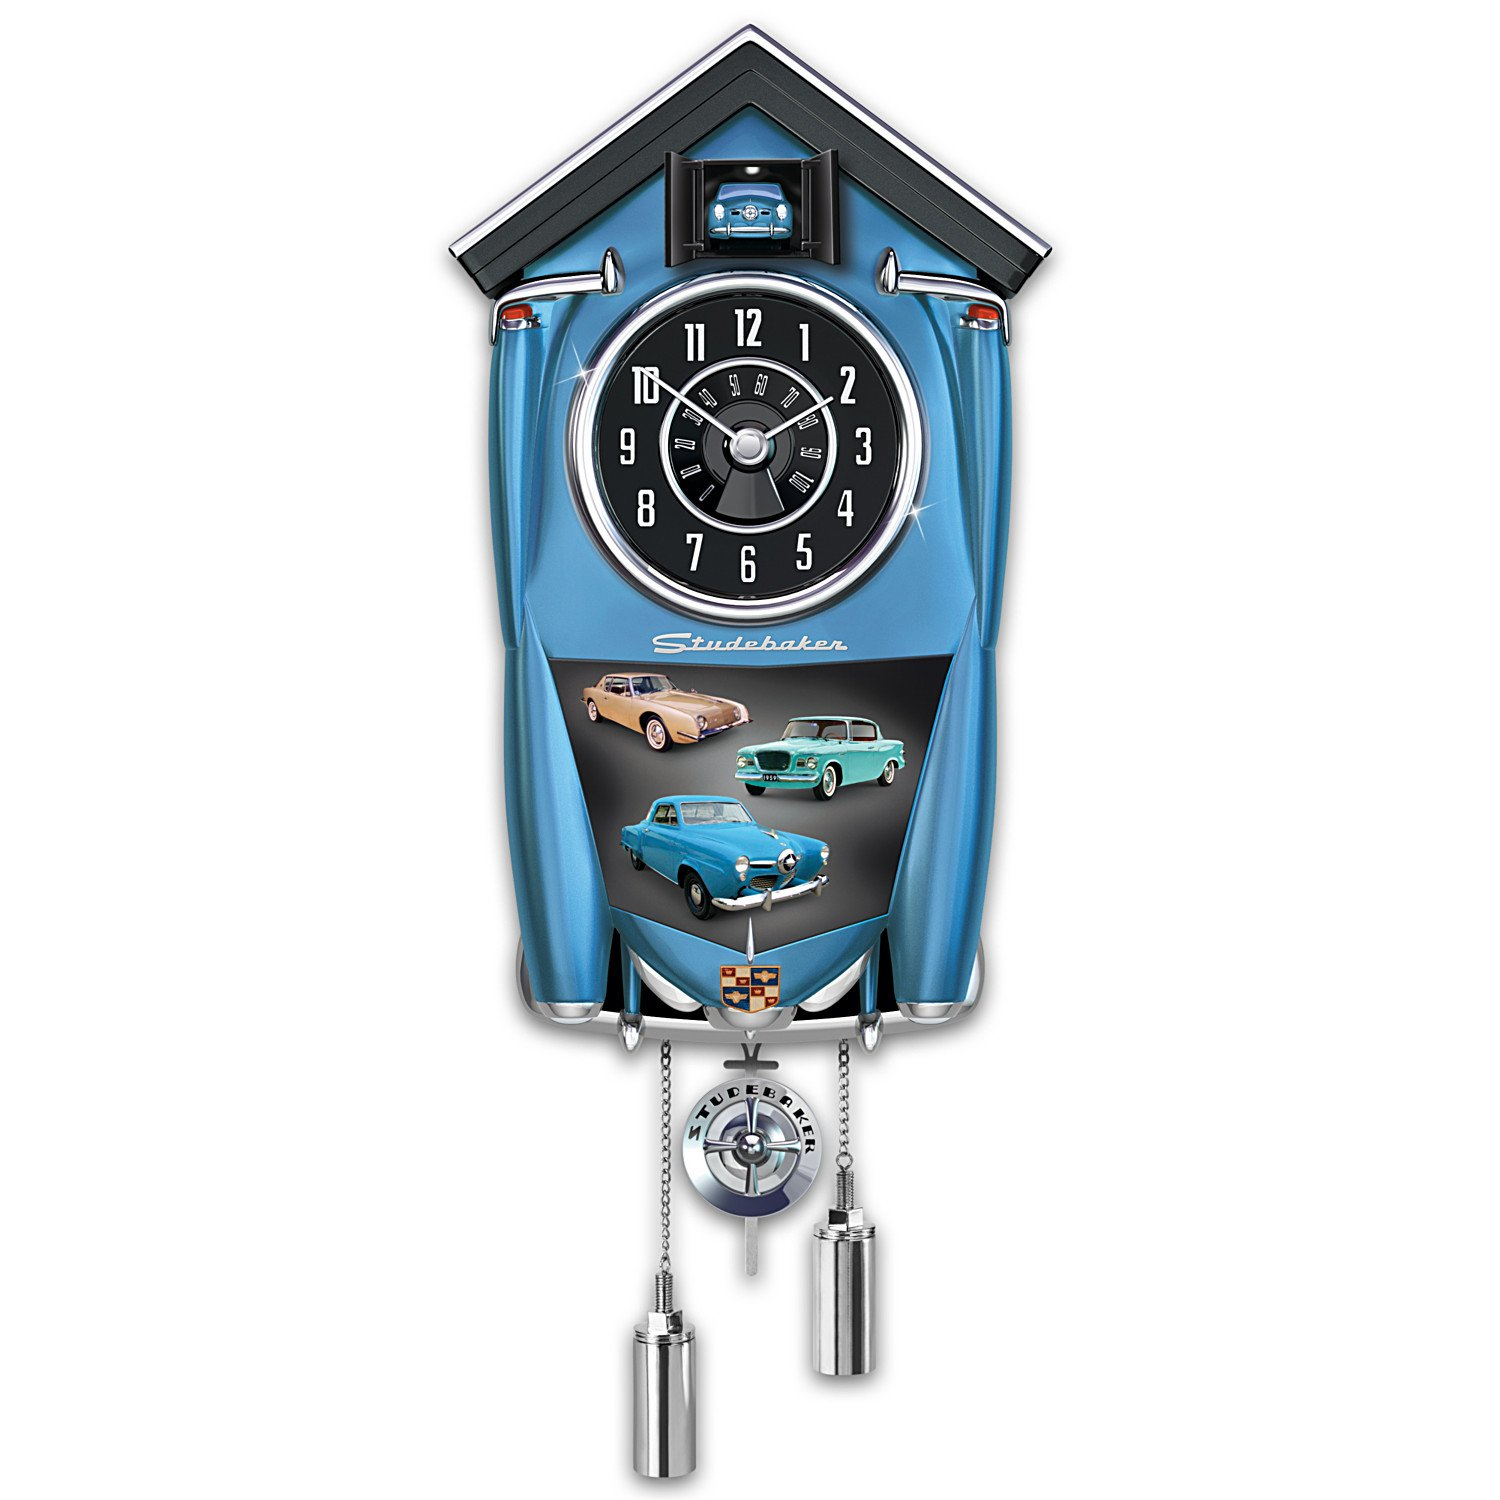 Studebaker Cuckoo Clock with Champion Lark Regal And Avanti Art: 1 of 10,000 by The Bradford Exchange 01-19724-001